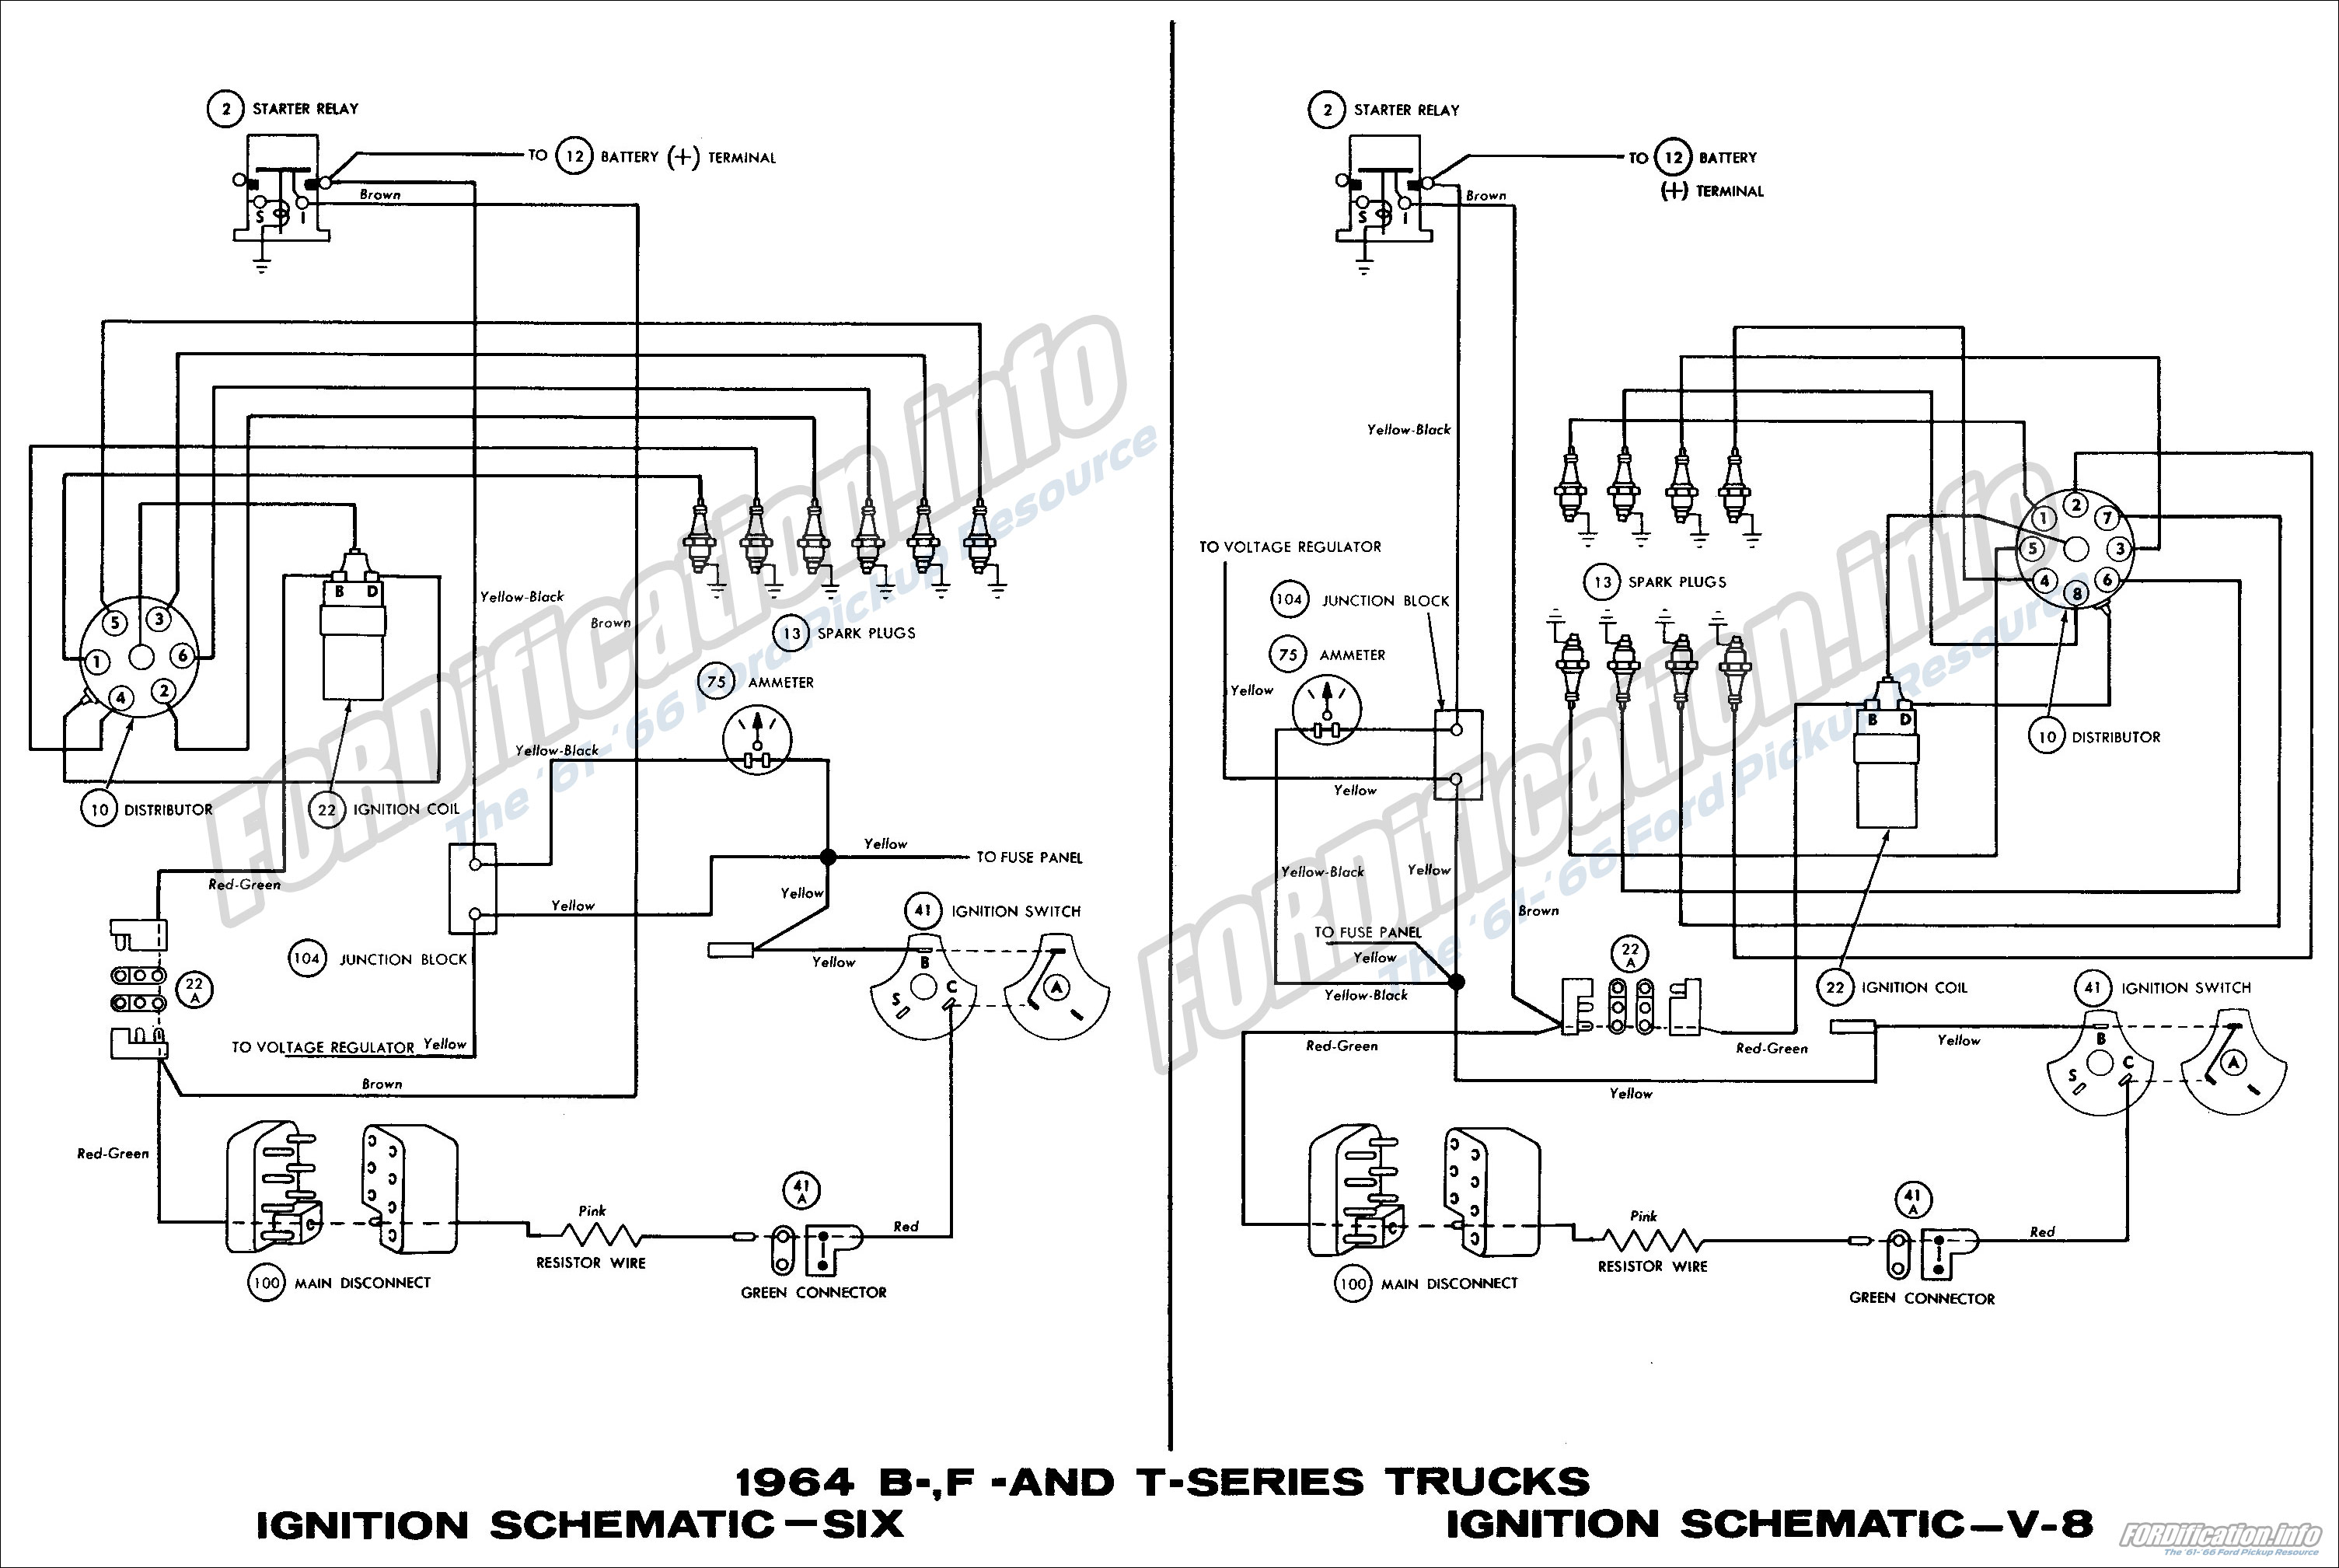 1964_03 wiring diagrams ford pickups the wiring diagram readingrat net Ford E 350 Wiring Diagrams at edmiracle.co